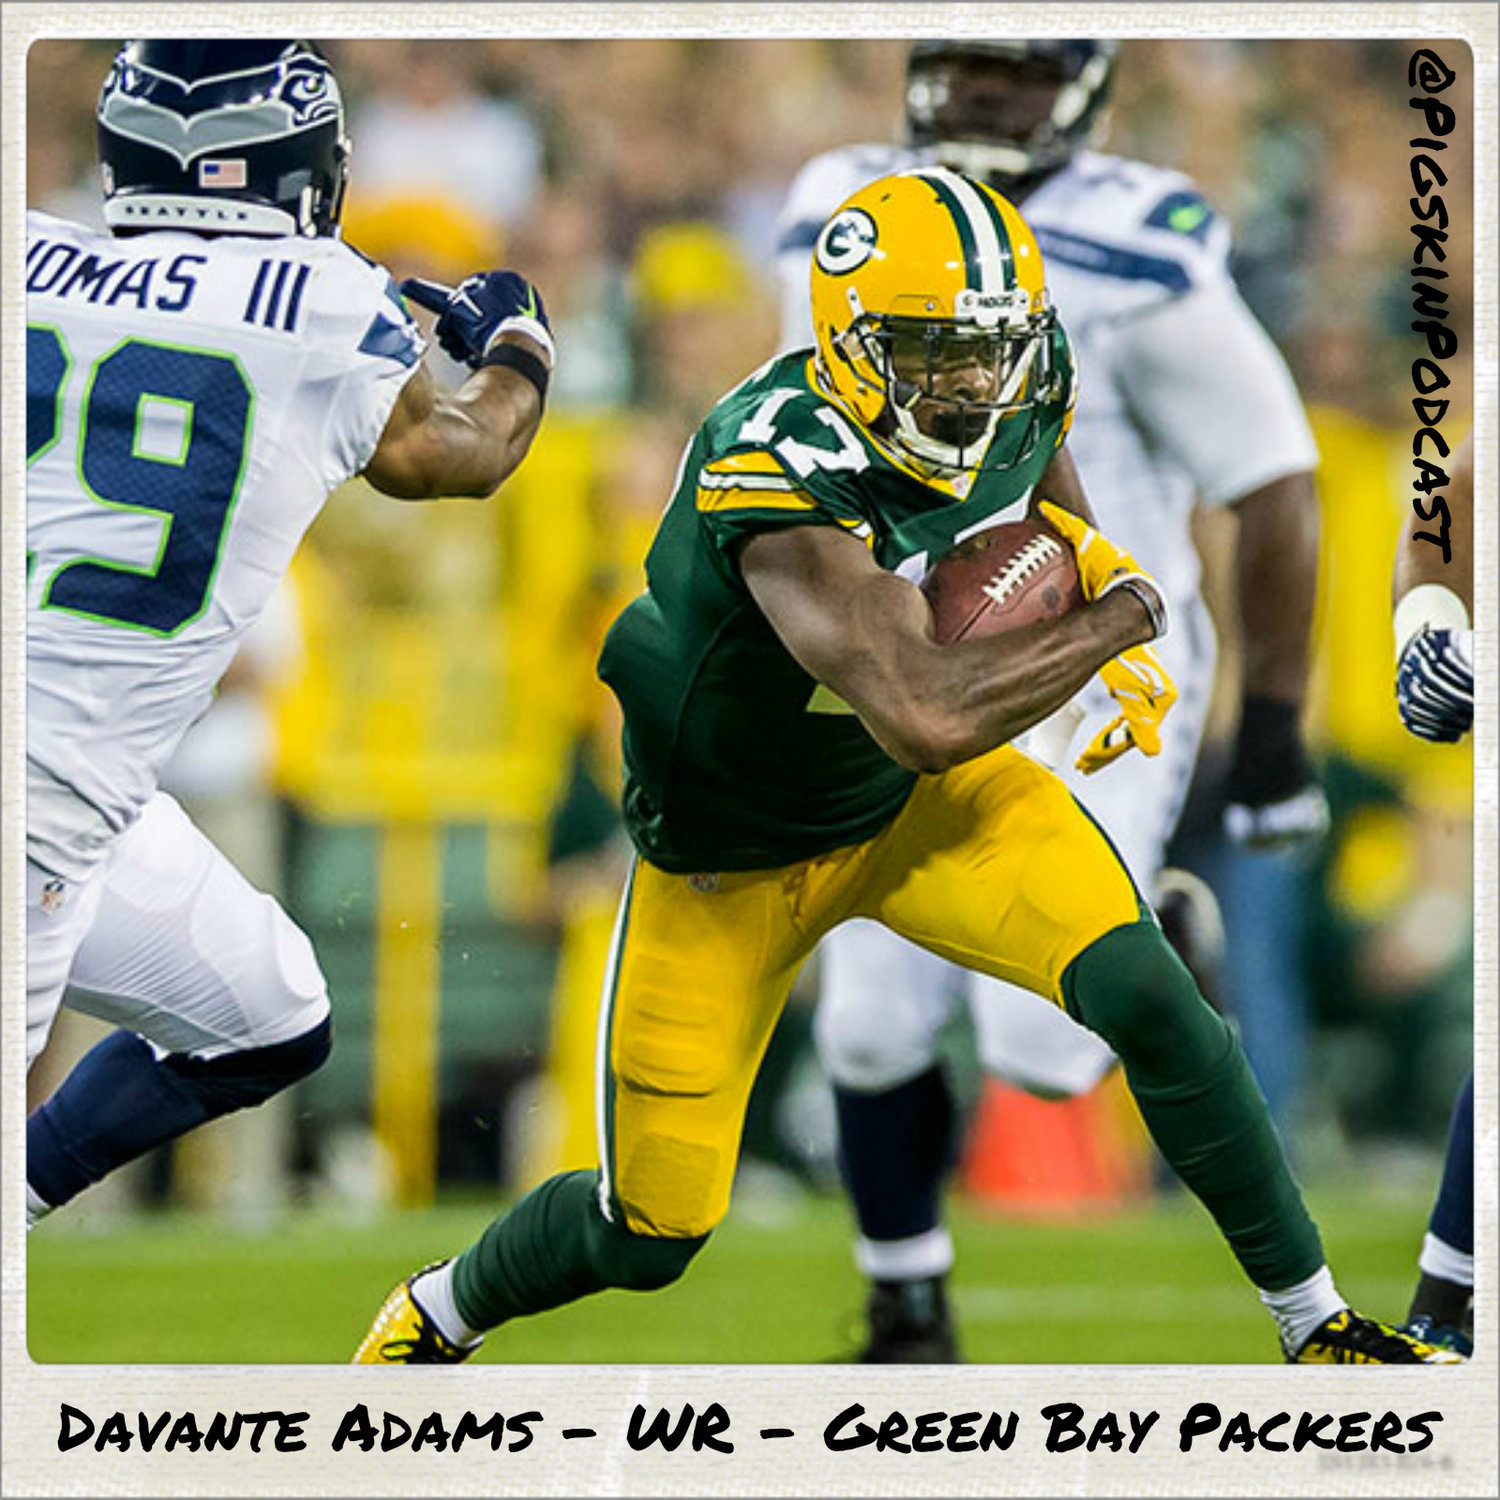 finest selection 0a5d7 dd3ef Adams has been a sore-spot for many fantasy expert over the years. The  consensus thinking was Adams was to have a breakout season in 2015.